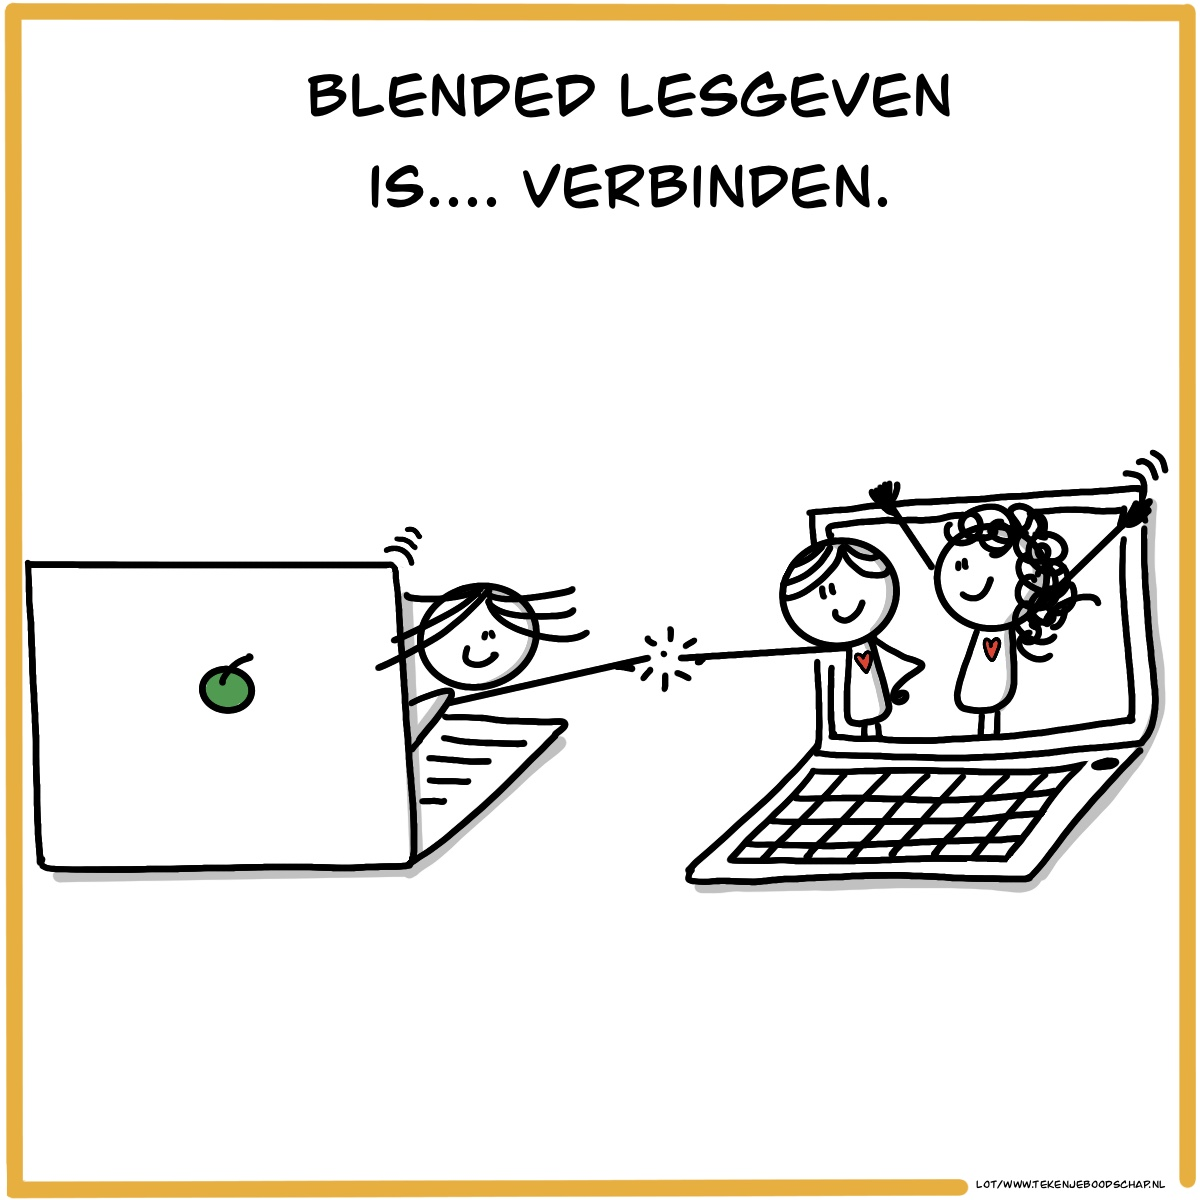 """Featured image for """"Blended lesgeven is . . . . verbinden"""""""